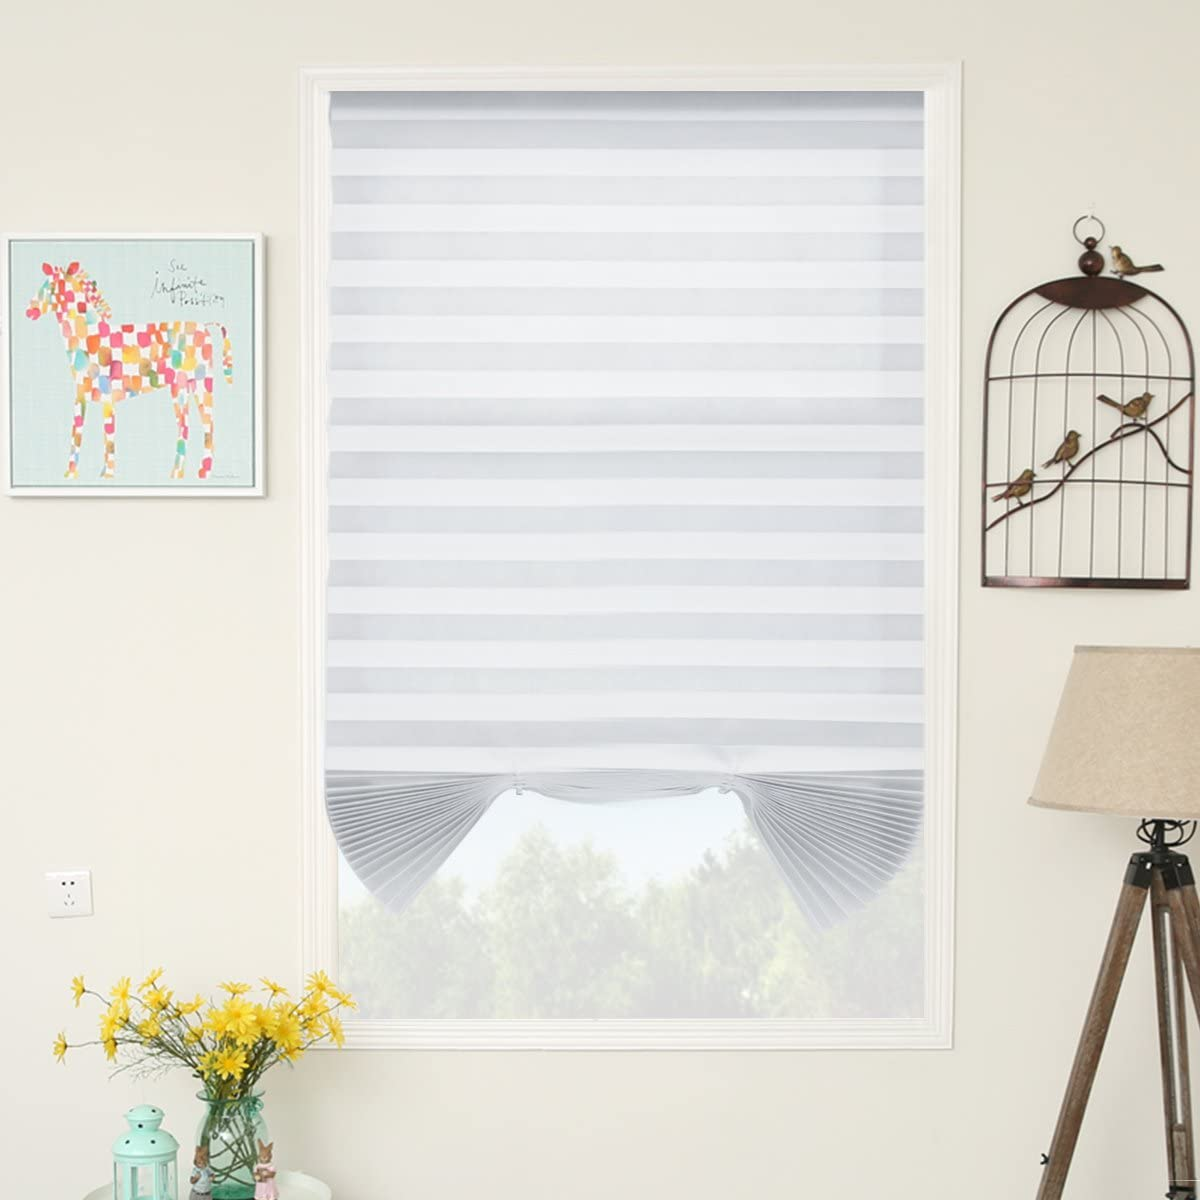 SUNFREE 6 Pack White Temporary Shades Cordless Blinds Fabric Light Filtering Pleated Window Shades Easy to Cut and Install 48